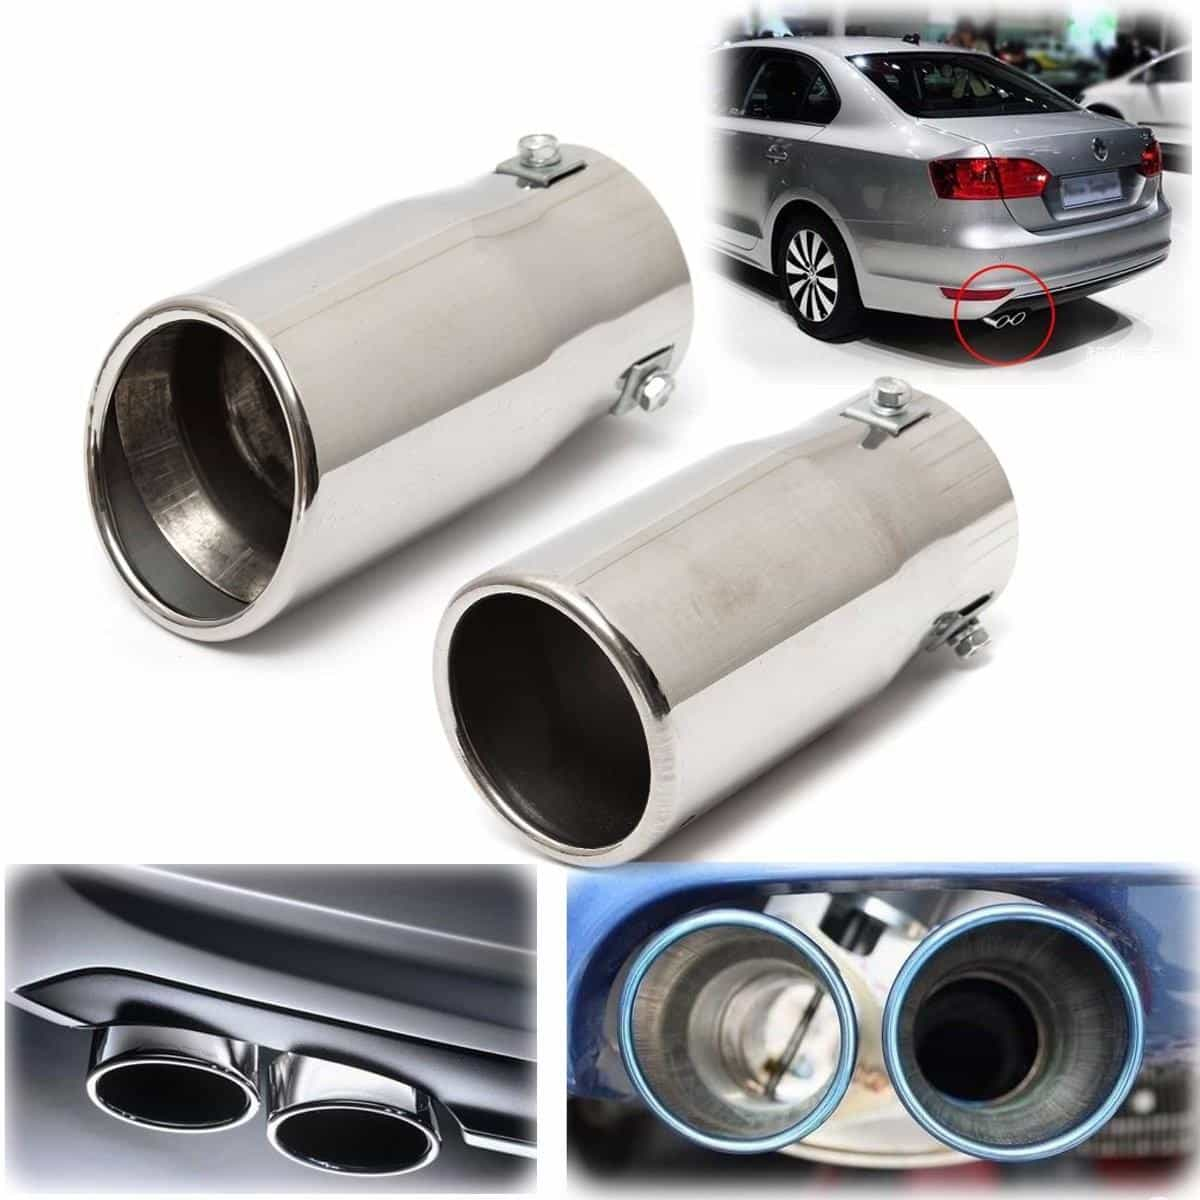 Automotive_Exhaust_System_and_Uses